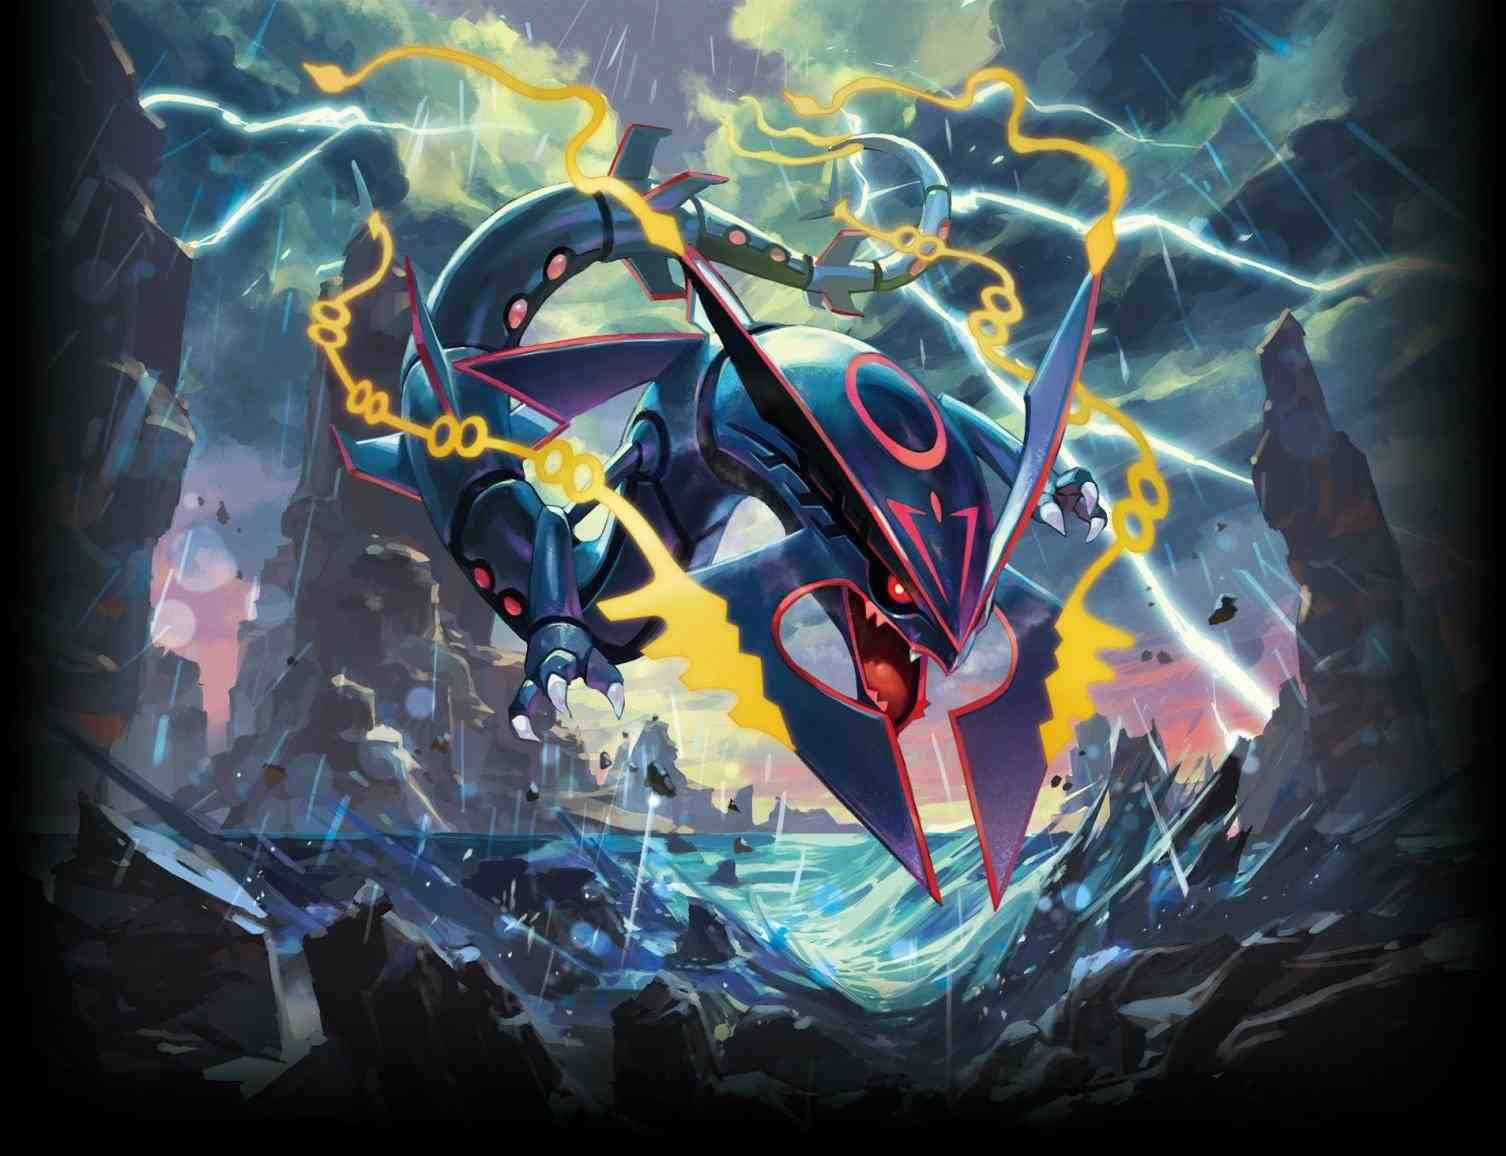 Pokemon Wallpaper Widescreen Jllsly Pokemon Rayquaza 150 Pokemon Pokemon Dragon